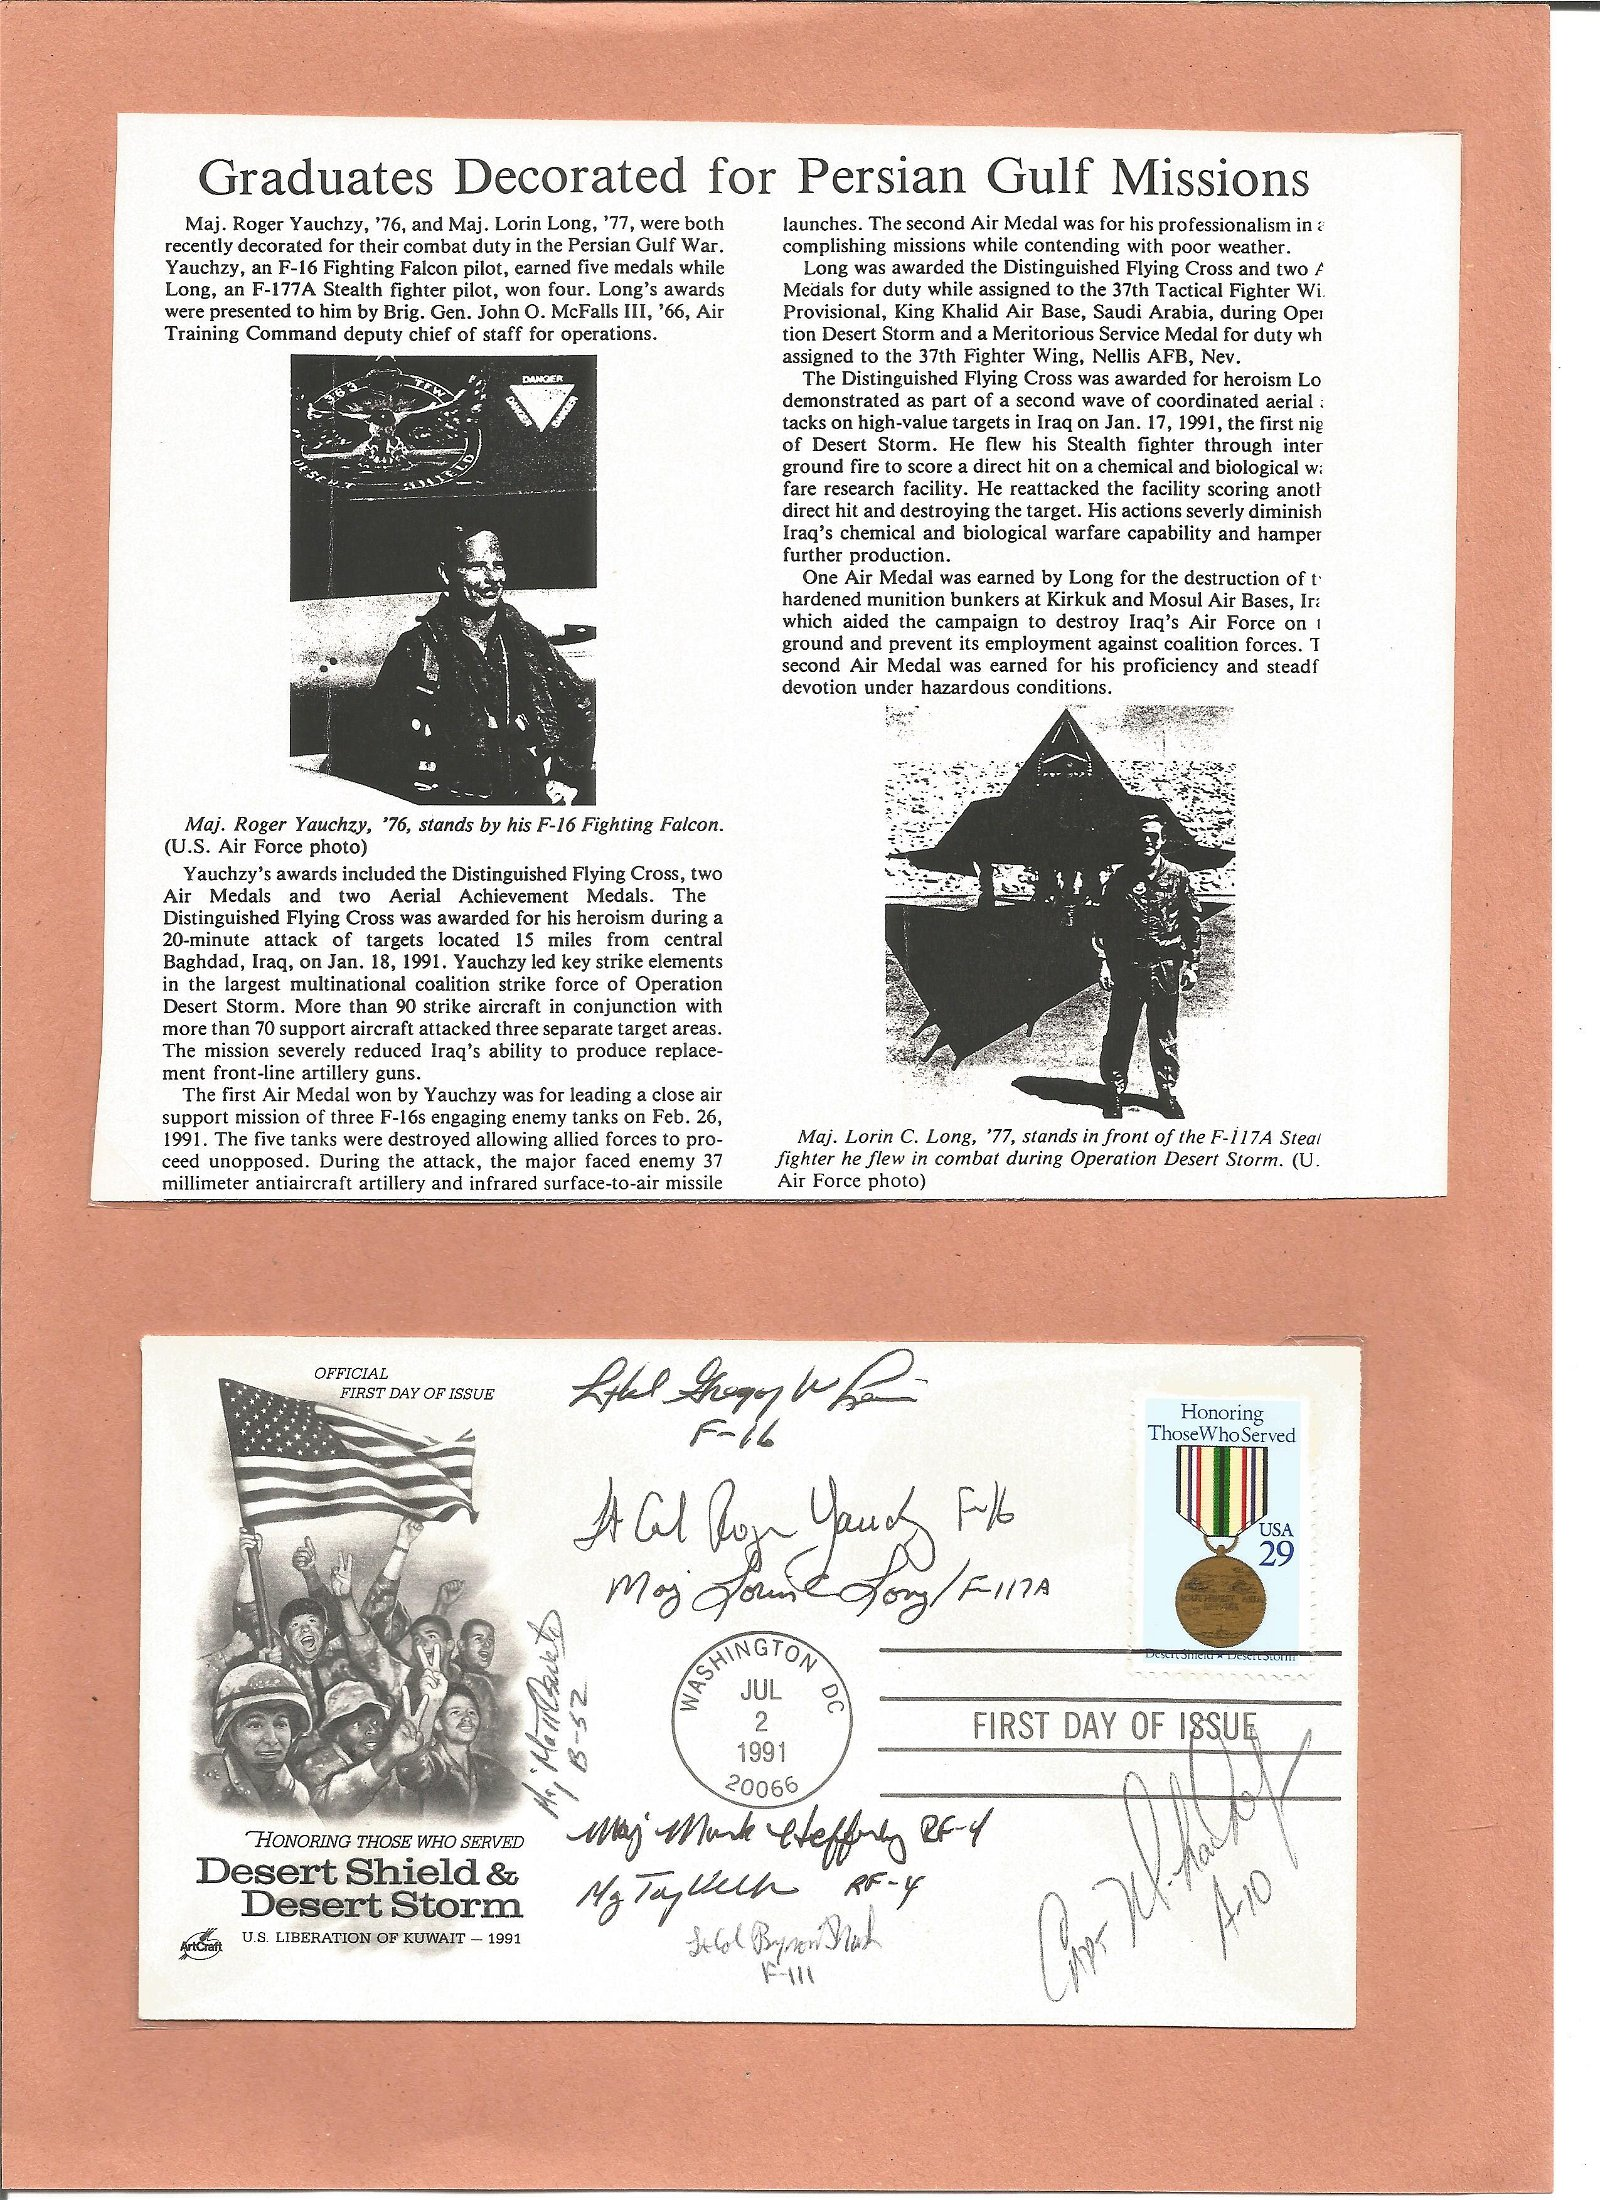 Persian Gulf USA FDI cover 1991. Signed by 8 USA air